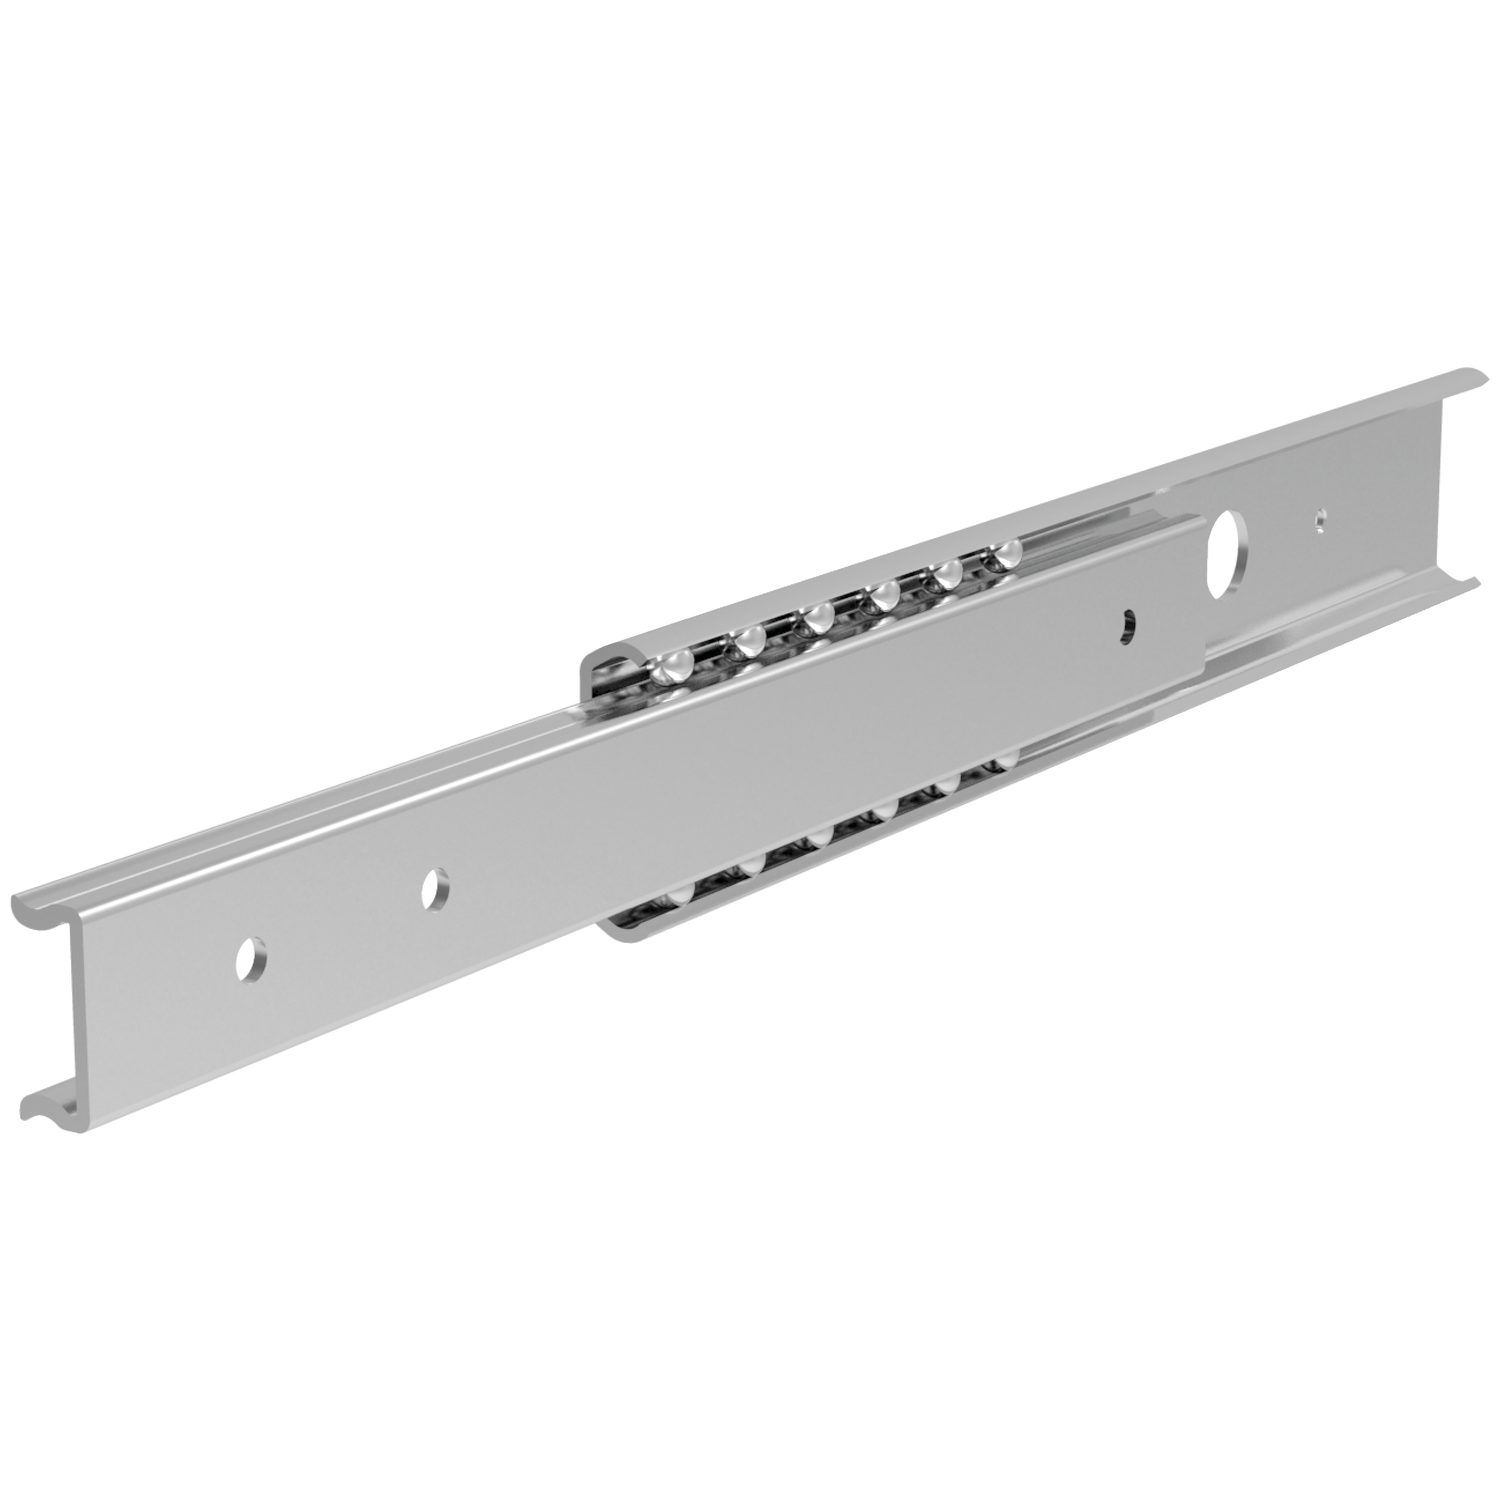 L2025 - Touch-to-Open Drawer Slides